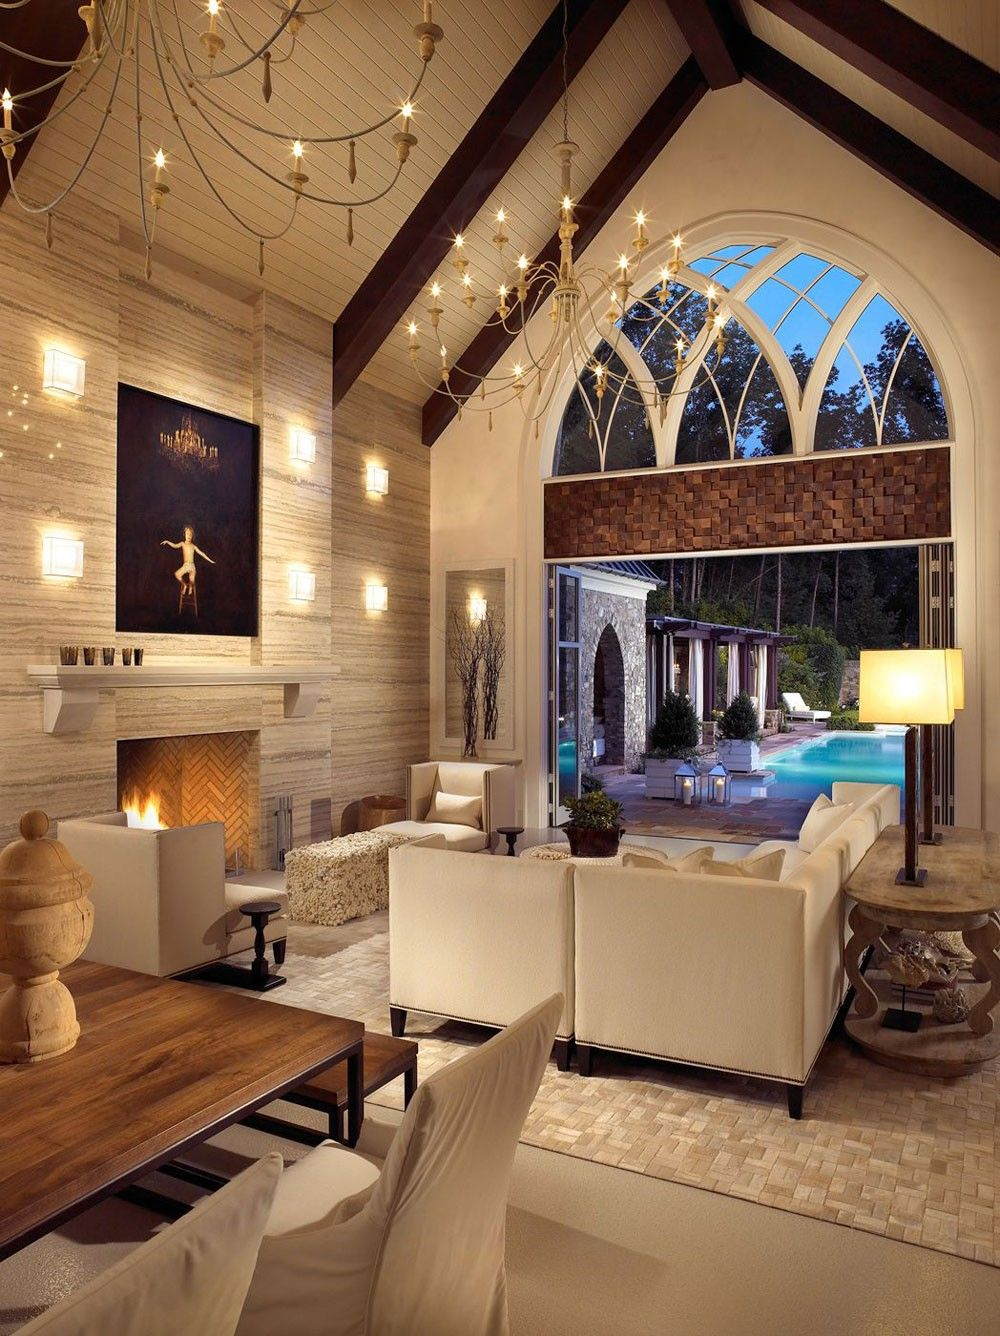 Pin By Tiah Dean On For The Home Rustic Living Room Vaulted Ceiling Living Room Small Living Rooms My beautiful living room